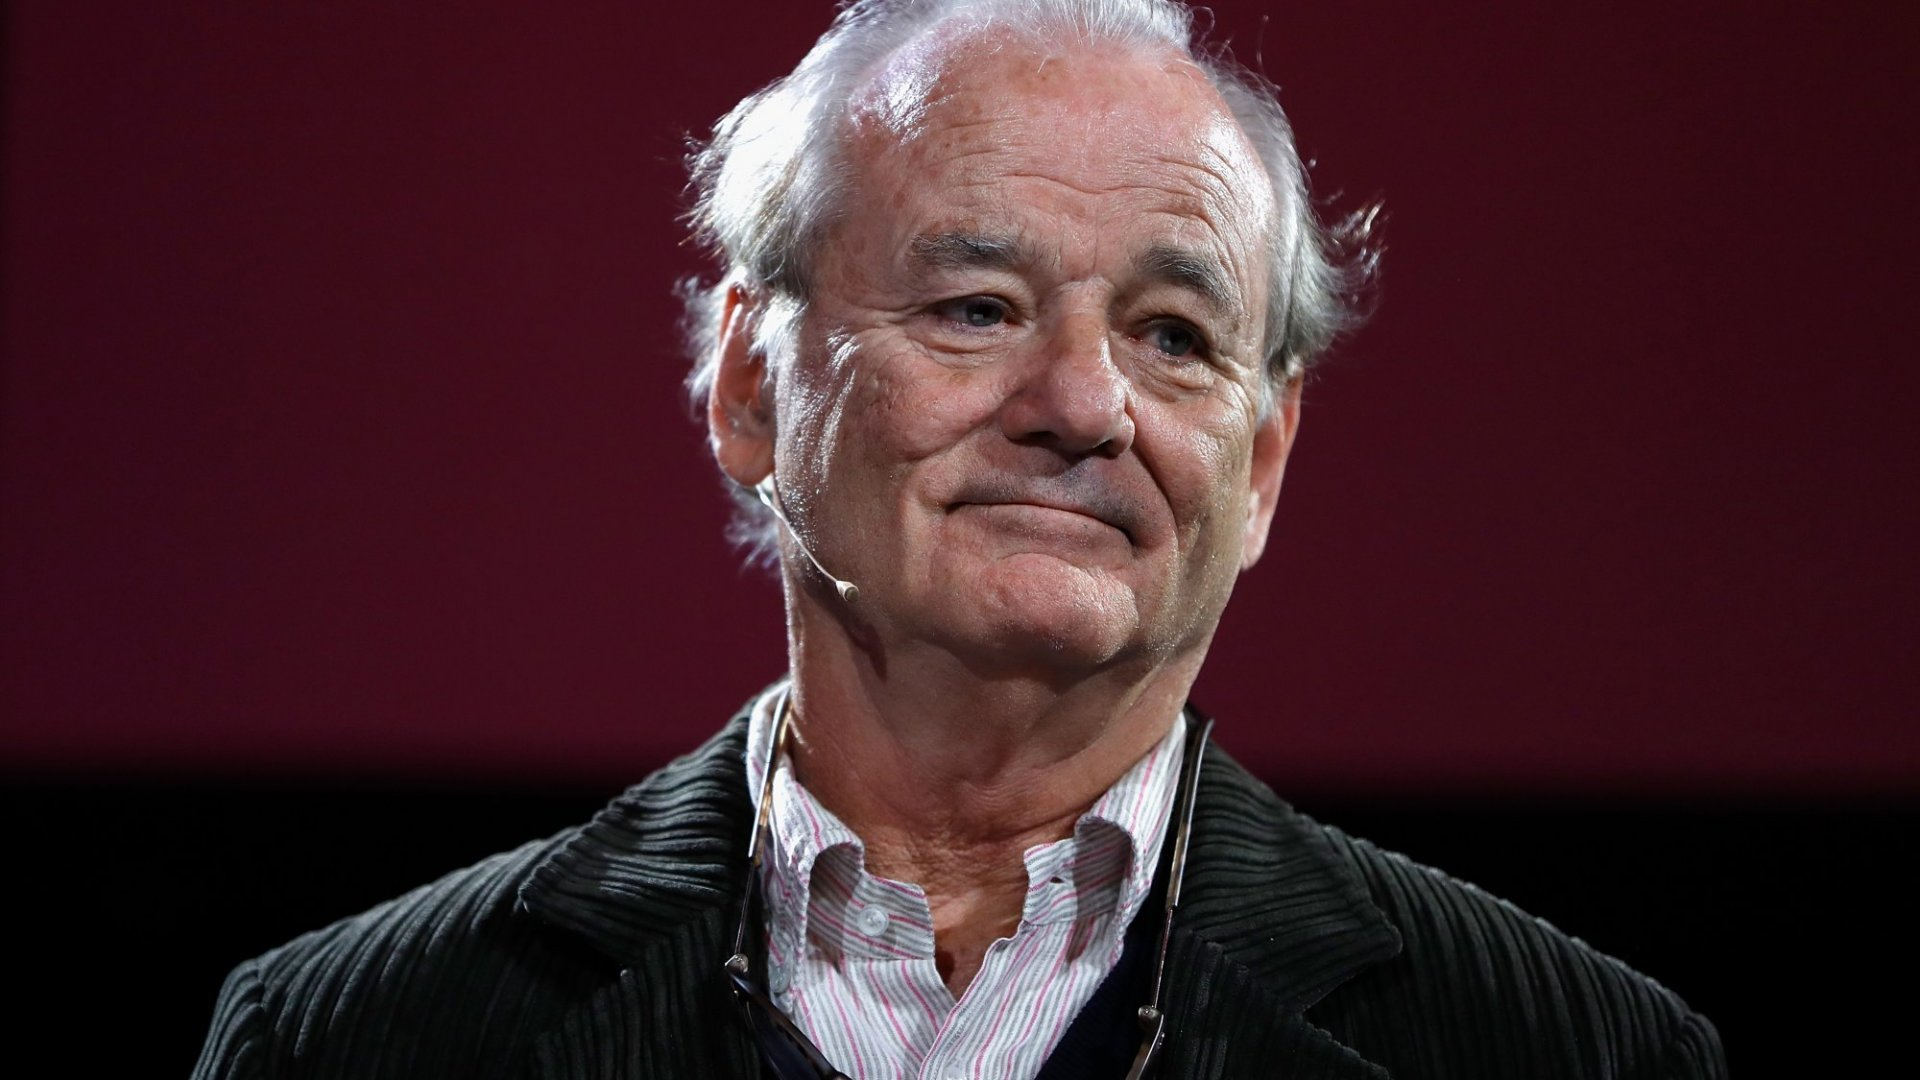 50 Bill Murray Quotes on Life, Success, and Happiness (So You've Got That Going For You)